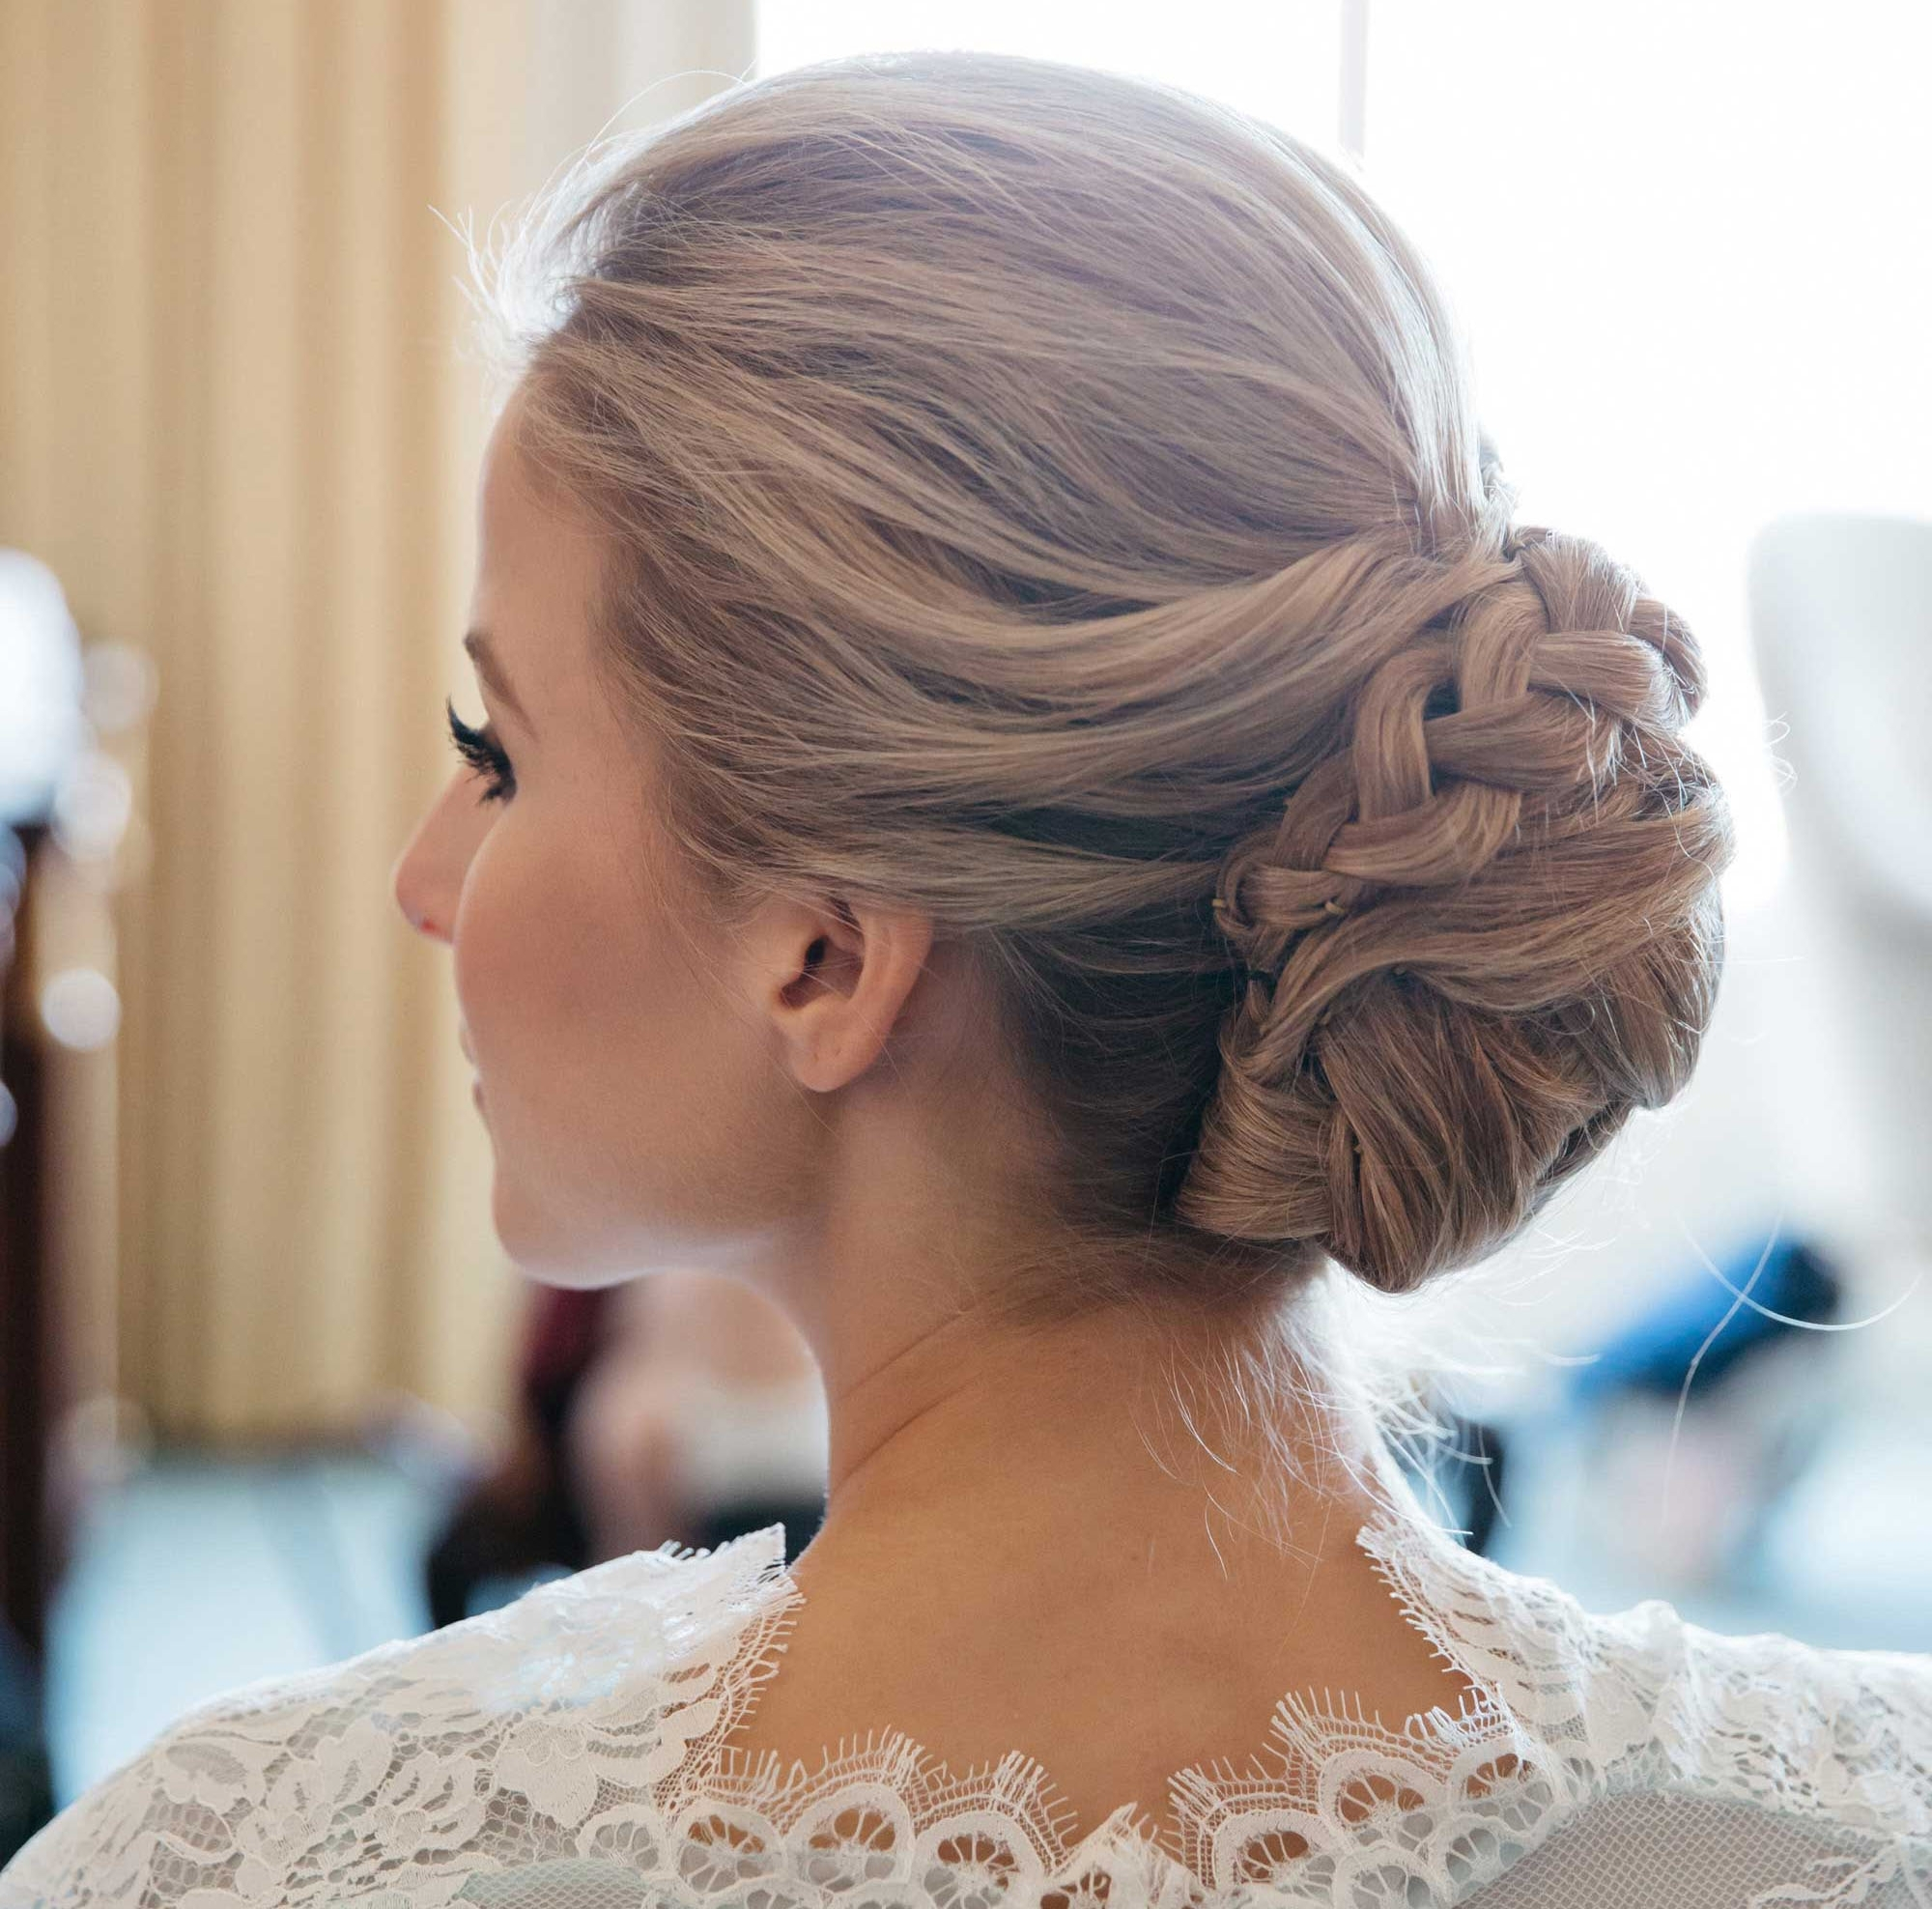 Braided Hairstyles: 5 Ideas For Your Wedding Look – Inside Weddings Regarding Most Recently Released Wedding Hairstyles For Long Hair With Braids (View 13 of 15)